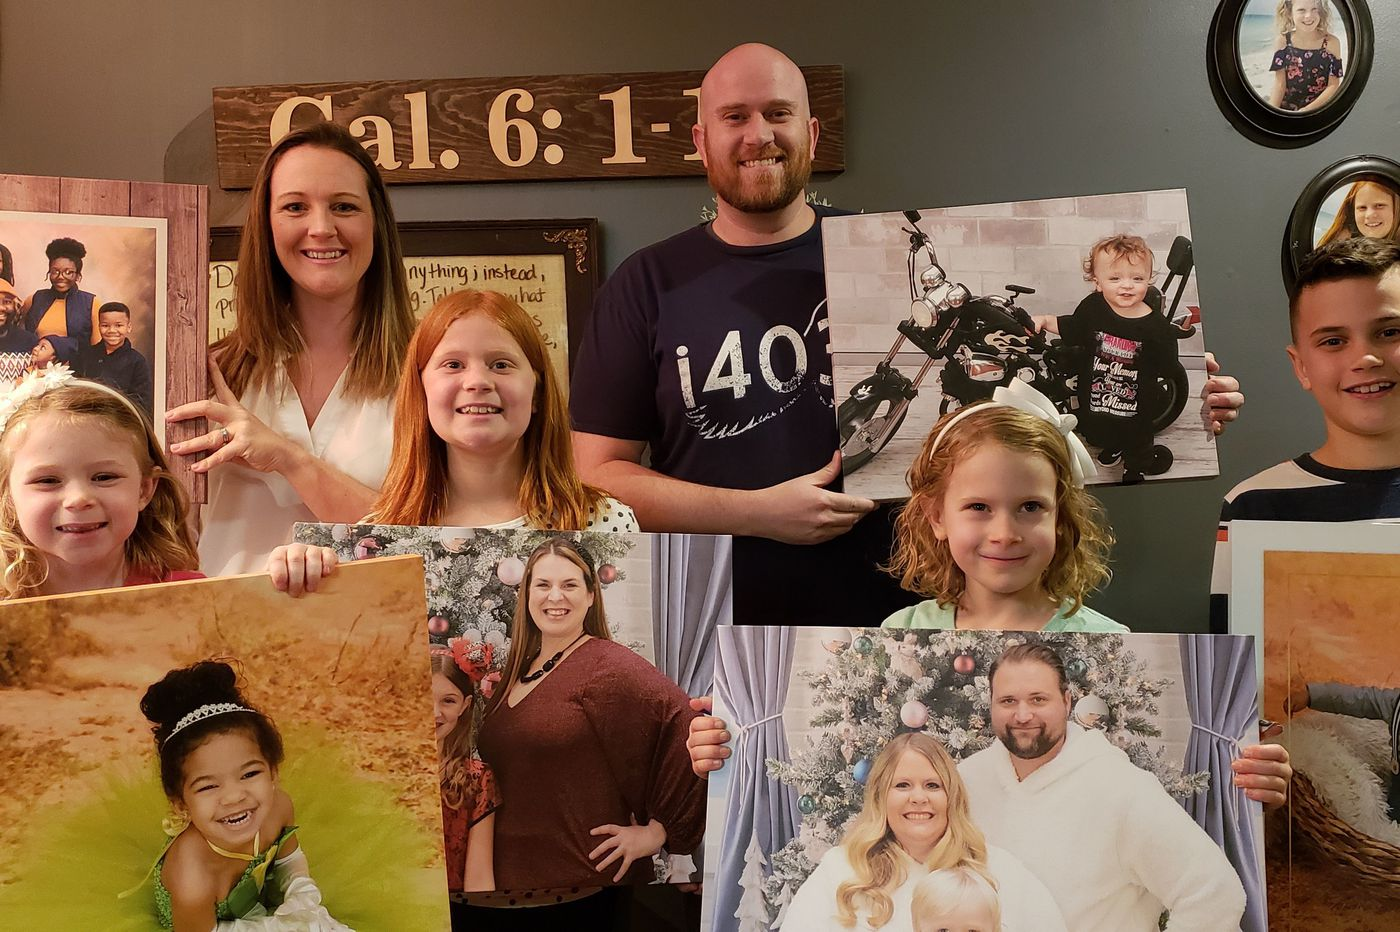 He reunited people with their family portraits after a national photo studio went bankrupt